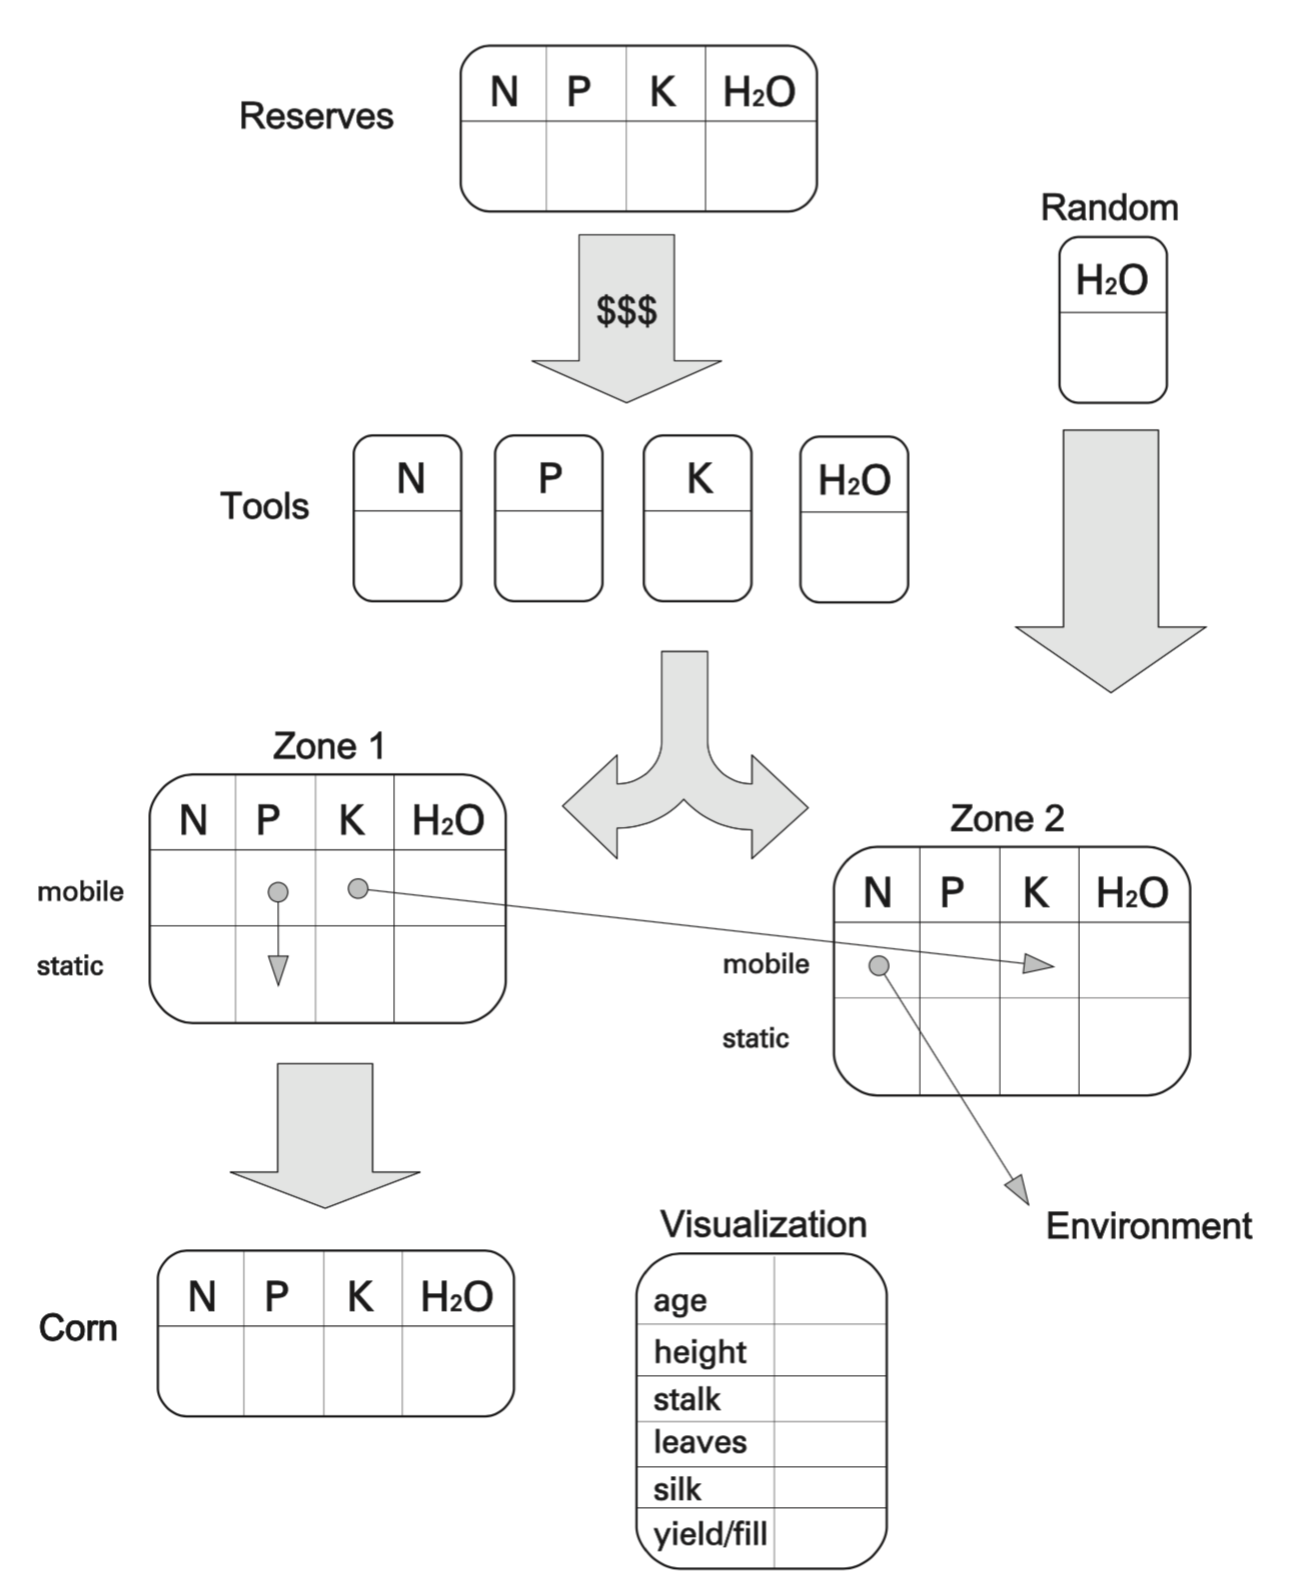 Schematic diagram of crop growth model created as part of the game